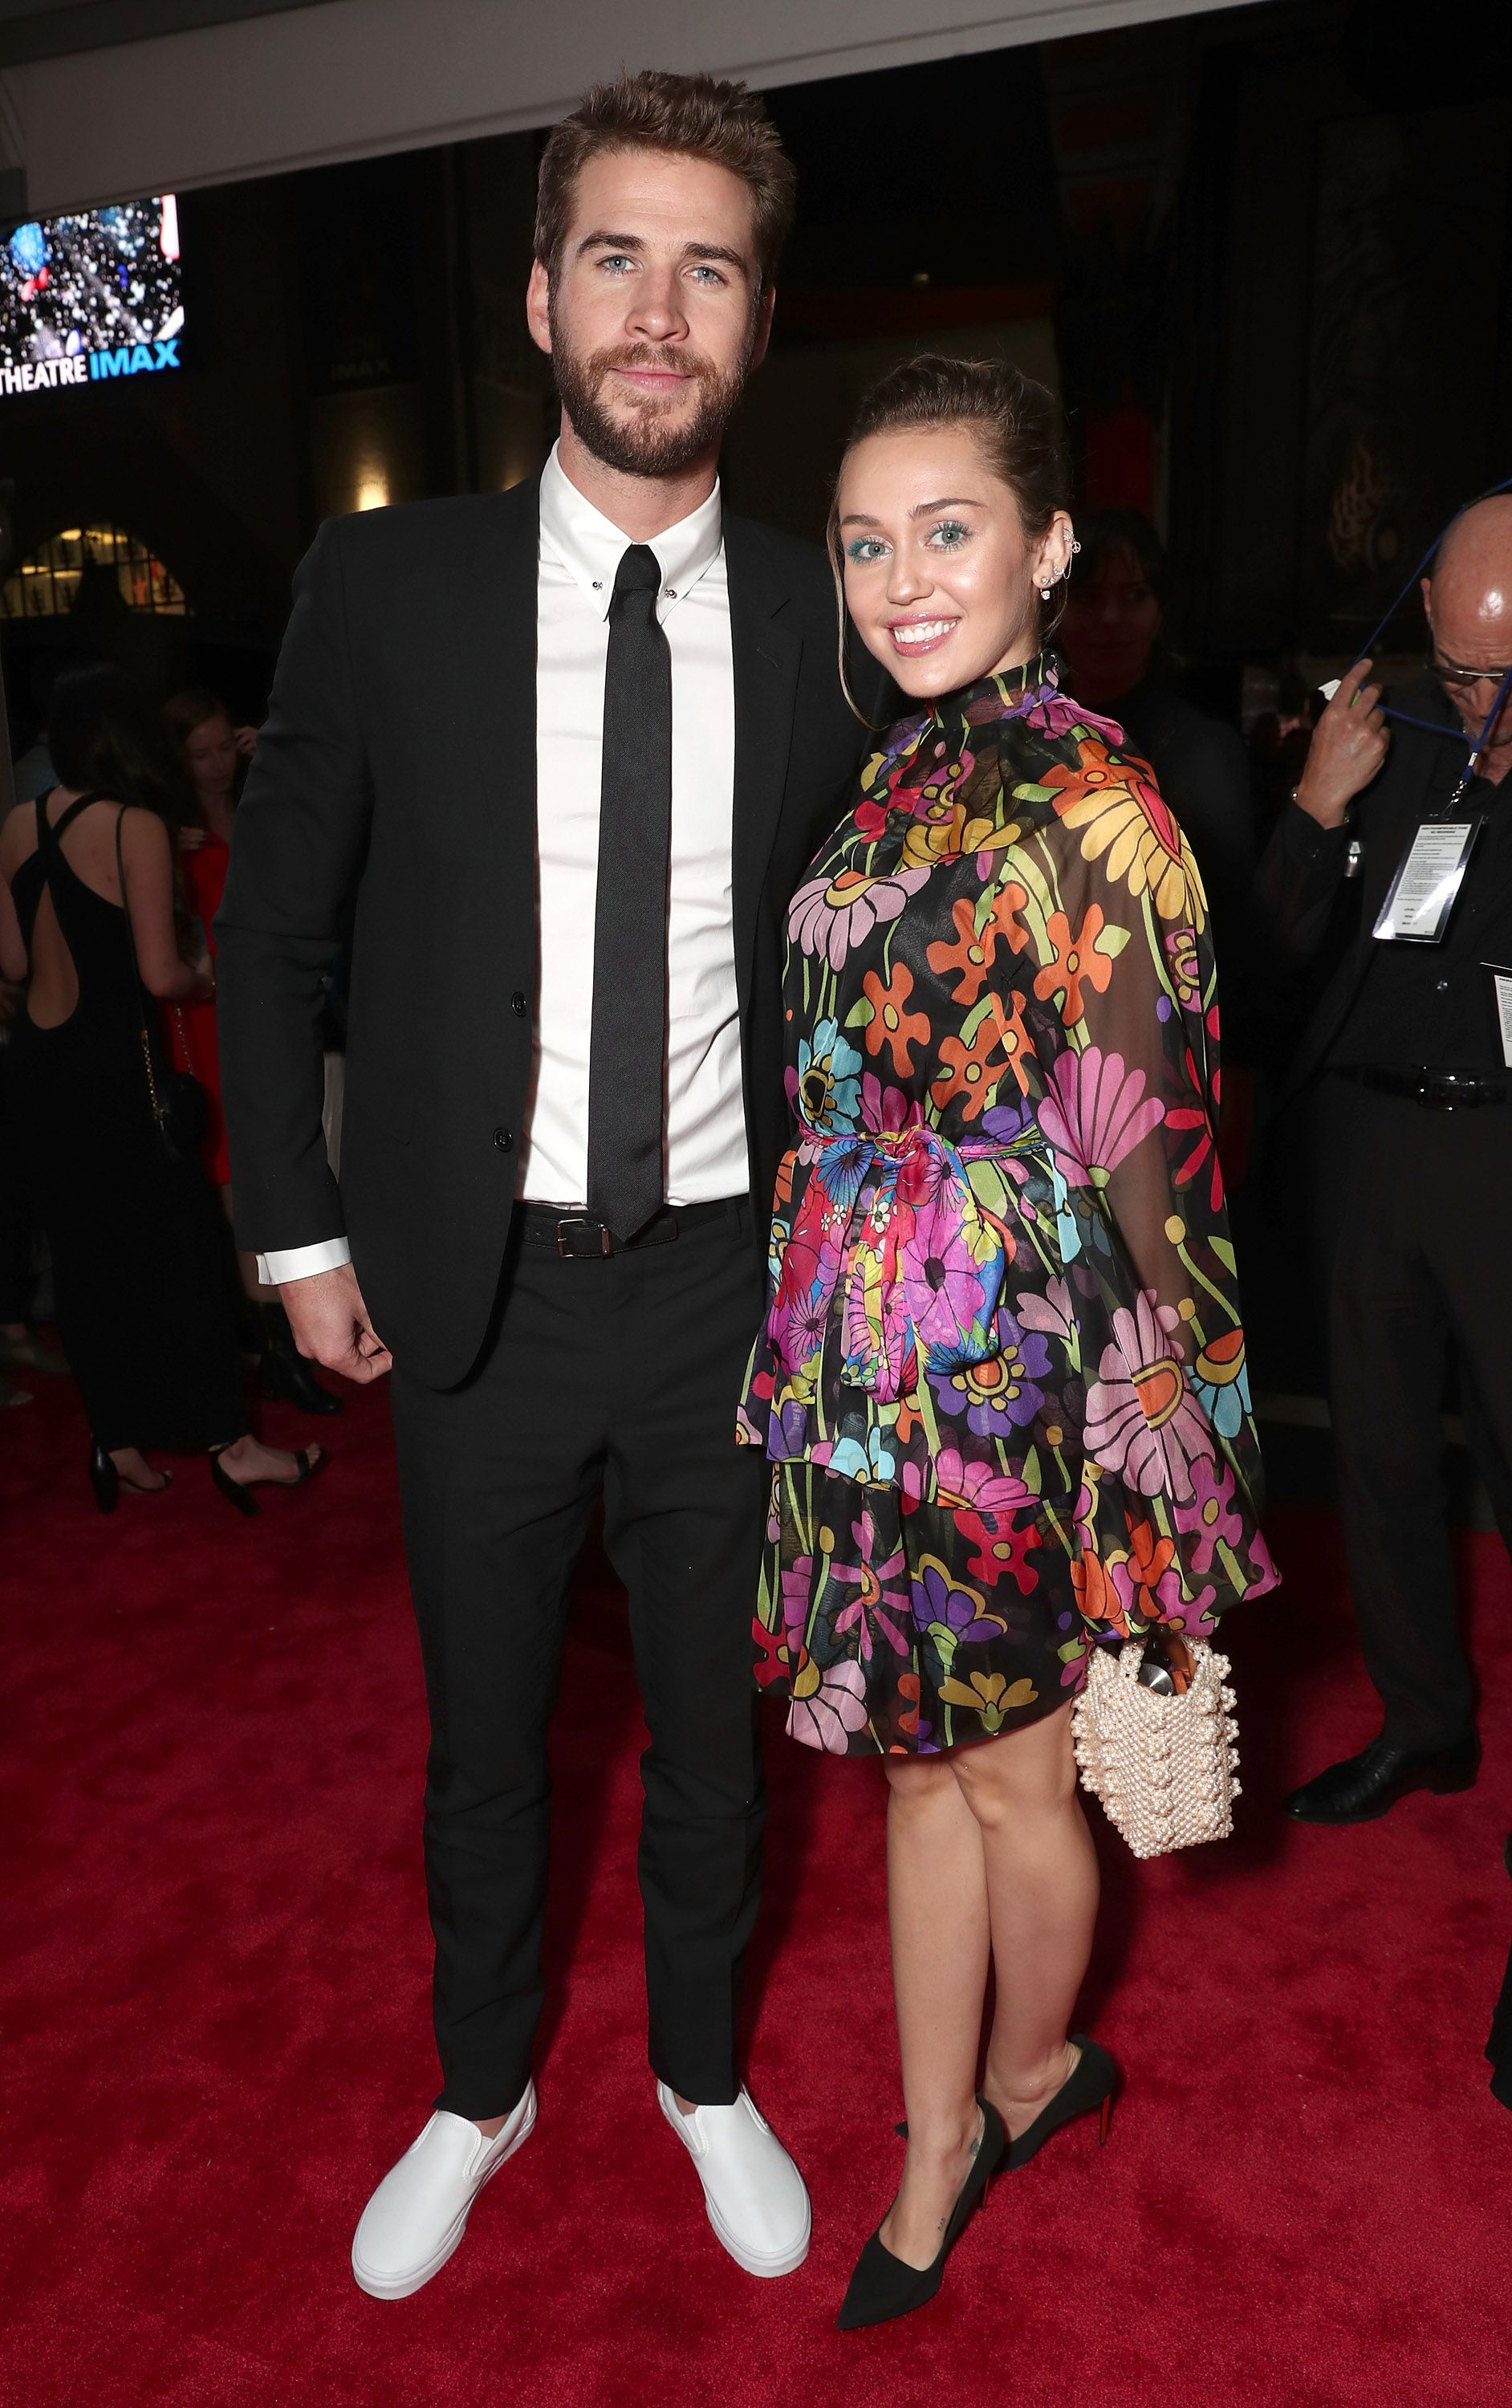 Is miley cyrus dating someone 2019